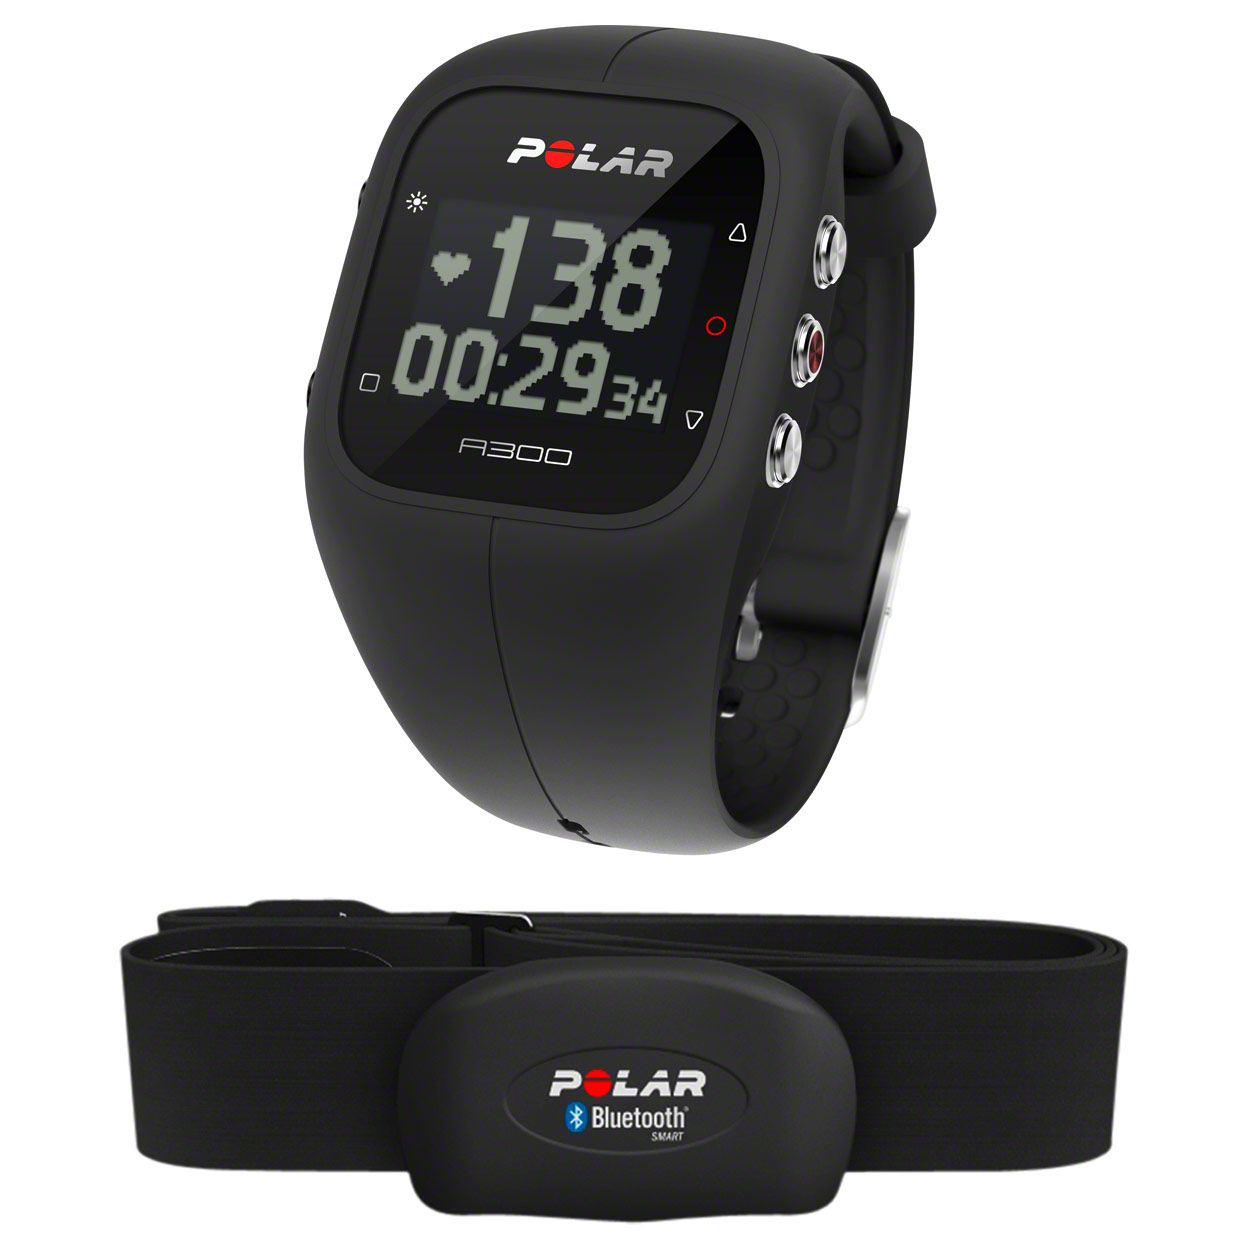 Fitnessgeräte: POLAR A300 HR Activity Tracker, inkl. Heart Rate Sensor